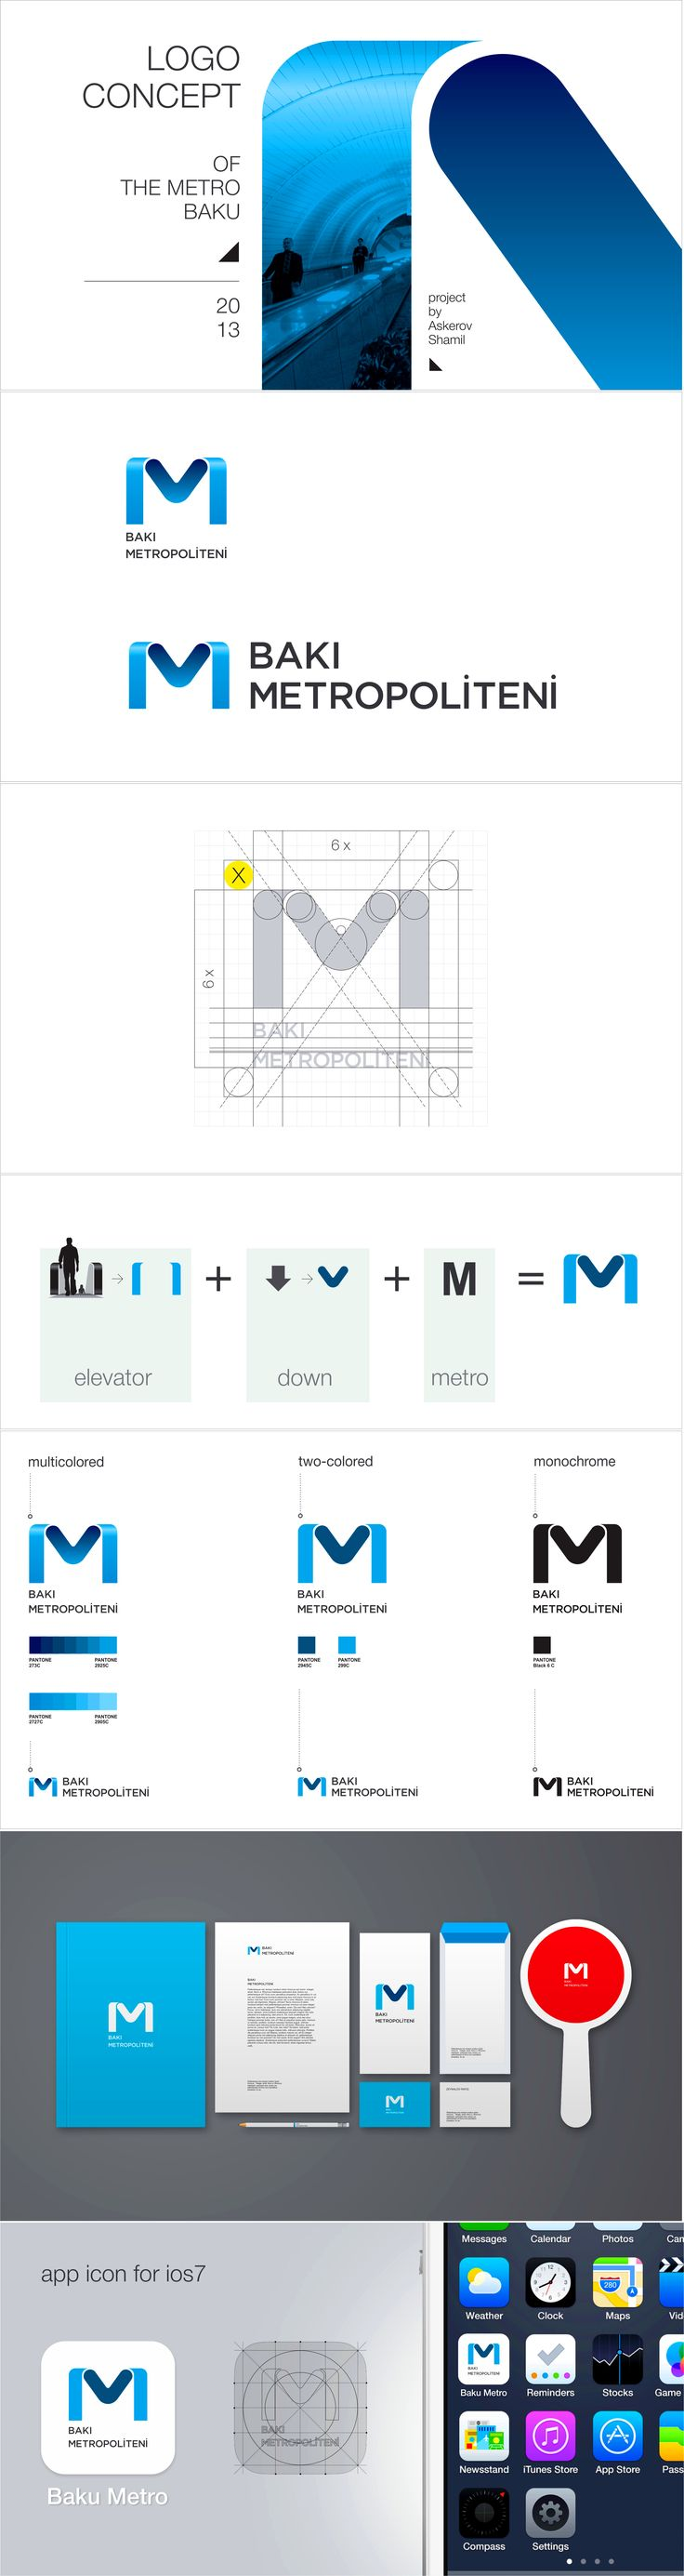 Logo concept of the metro Baku by Shamil Askerov, more http://www.behance.net/ShamilAskerov http://www.behance.net/gallery/Logo-concept-of-the-metro-Baku/12198643